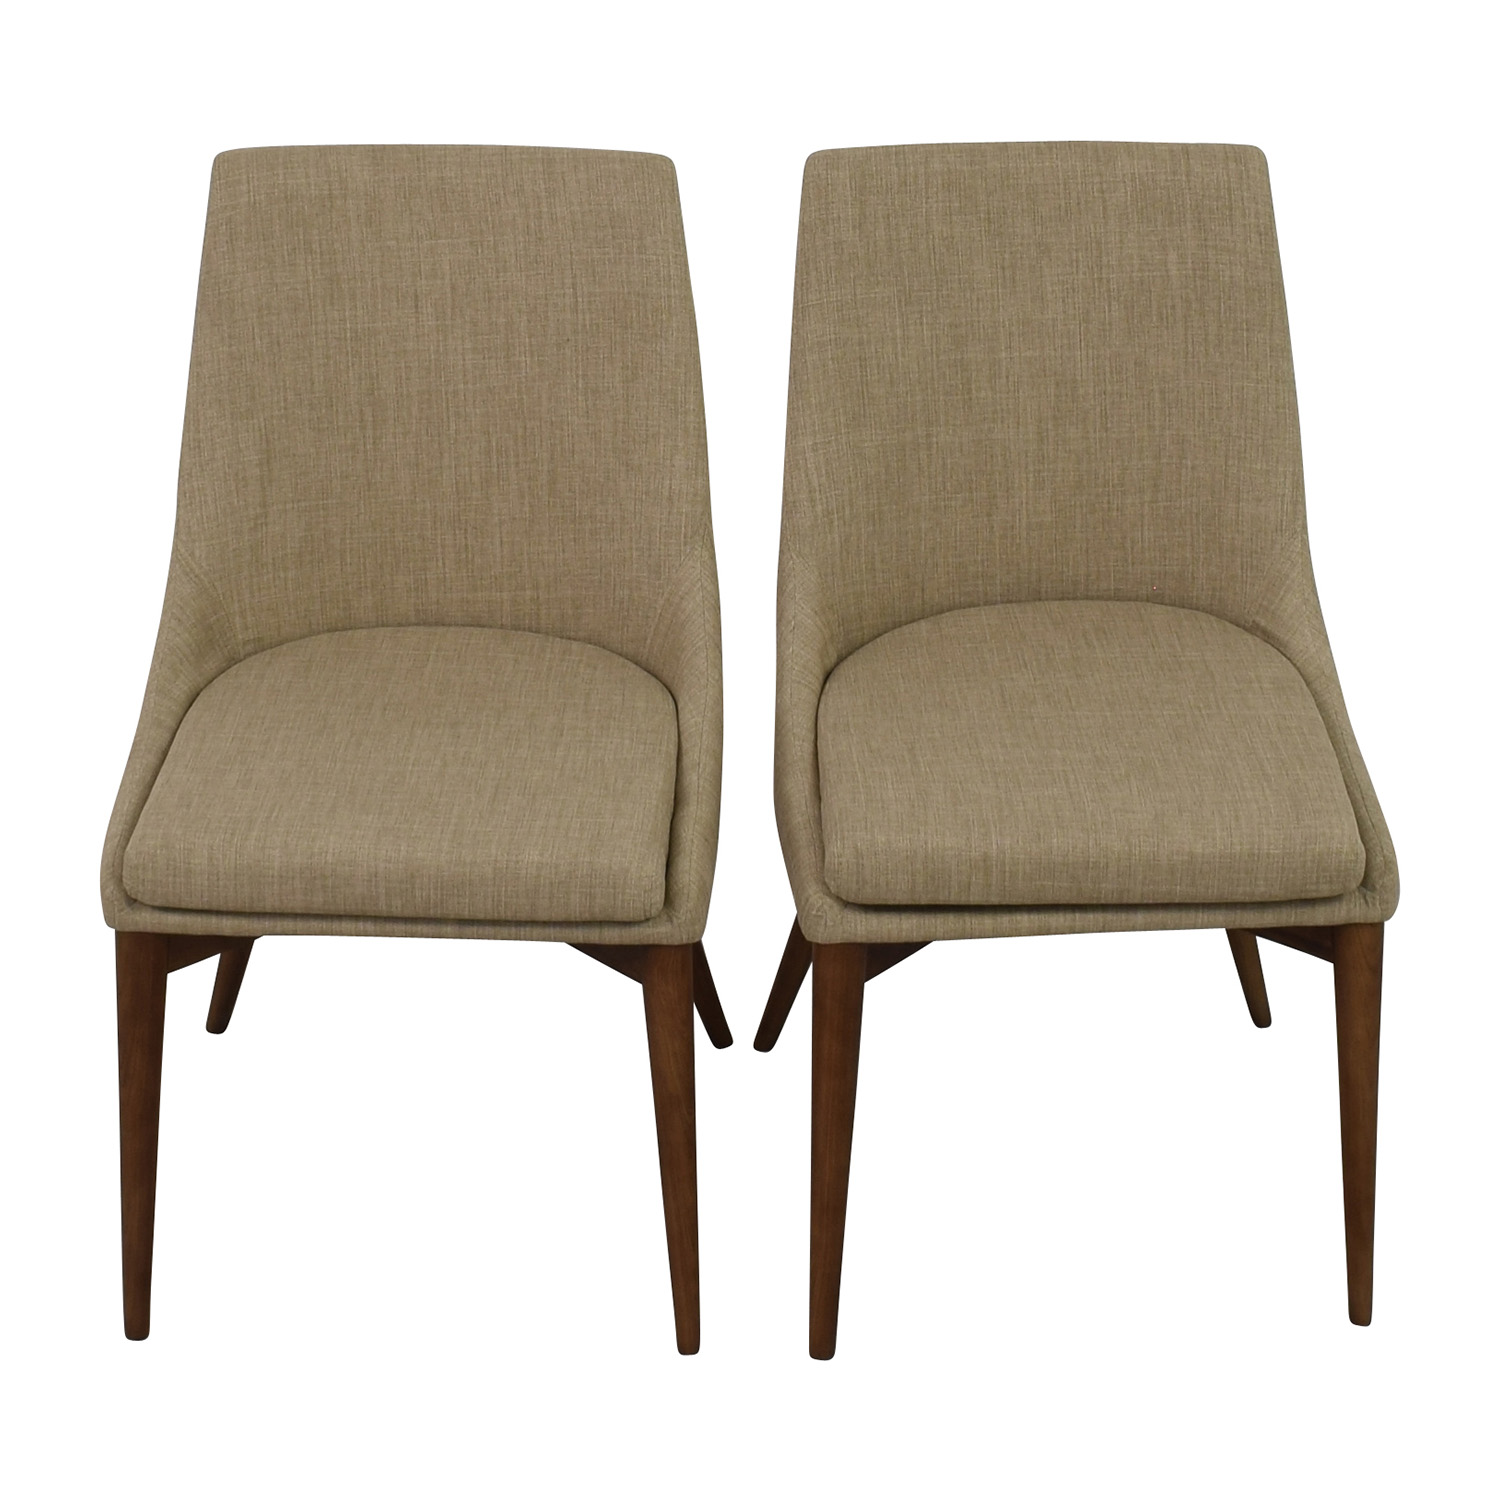 InMod InMod Beige Calais Side Chairs Dining Chairs